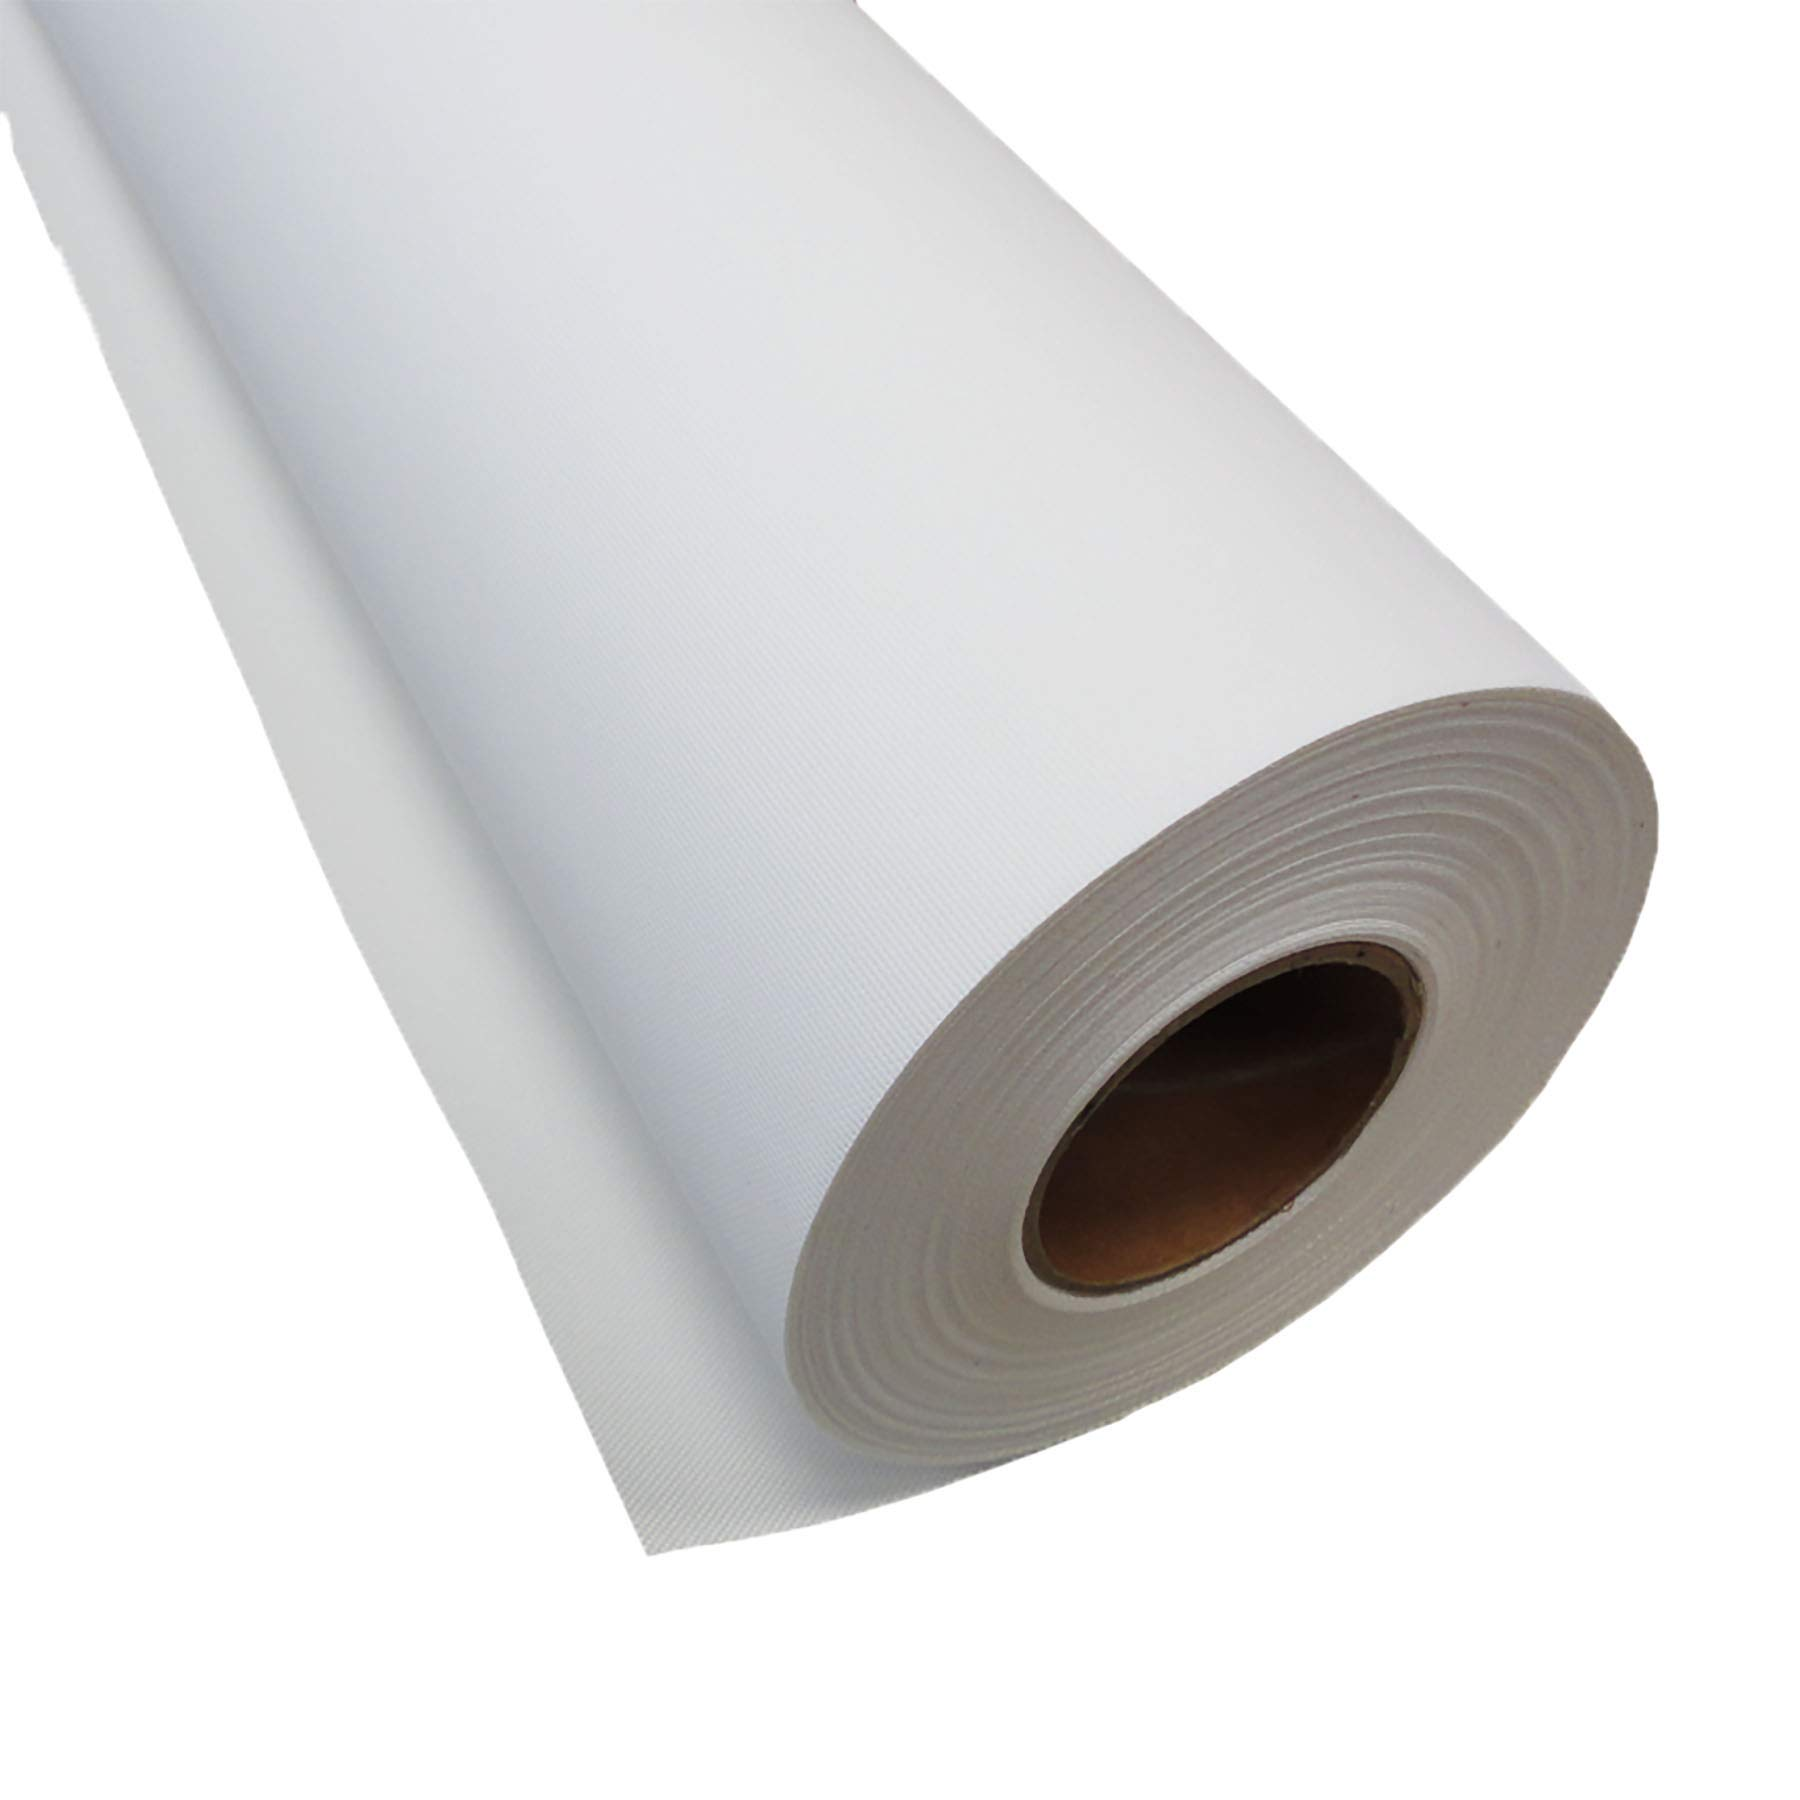 Inkjet Canvas Roll for Wide Format Inkjet Printing, 36'' x 75' roll, 100% Matte Polyester Canvas by Plotter Paper Direct by Plotter Paper Direct